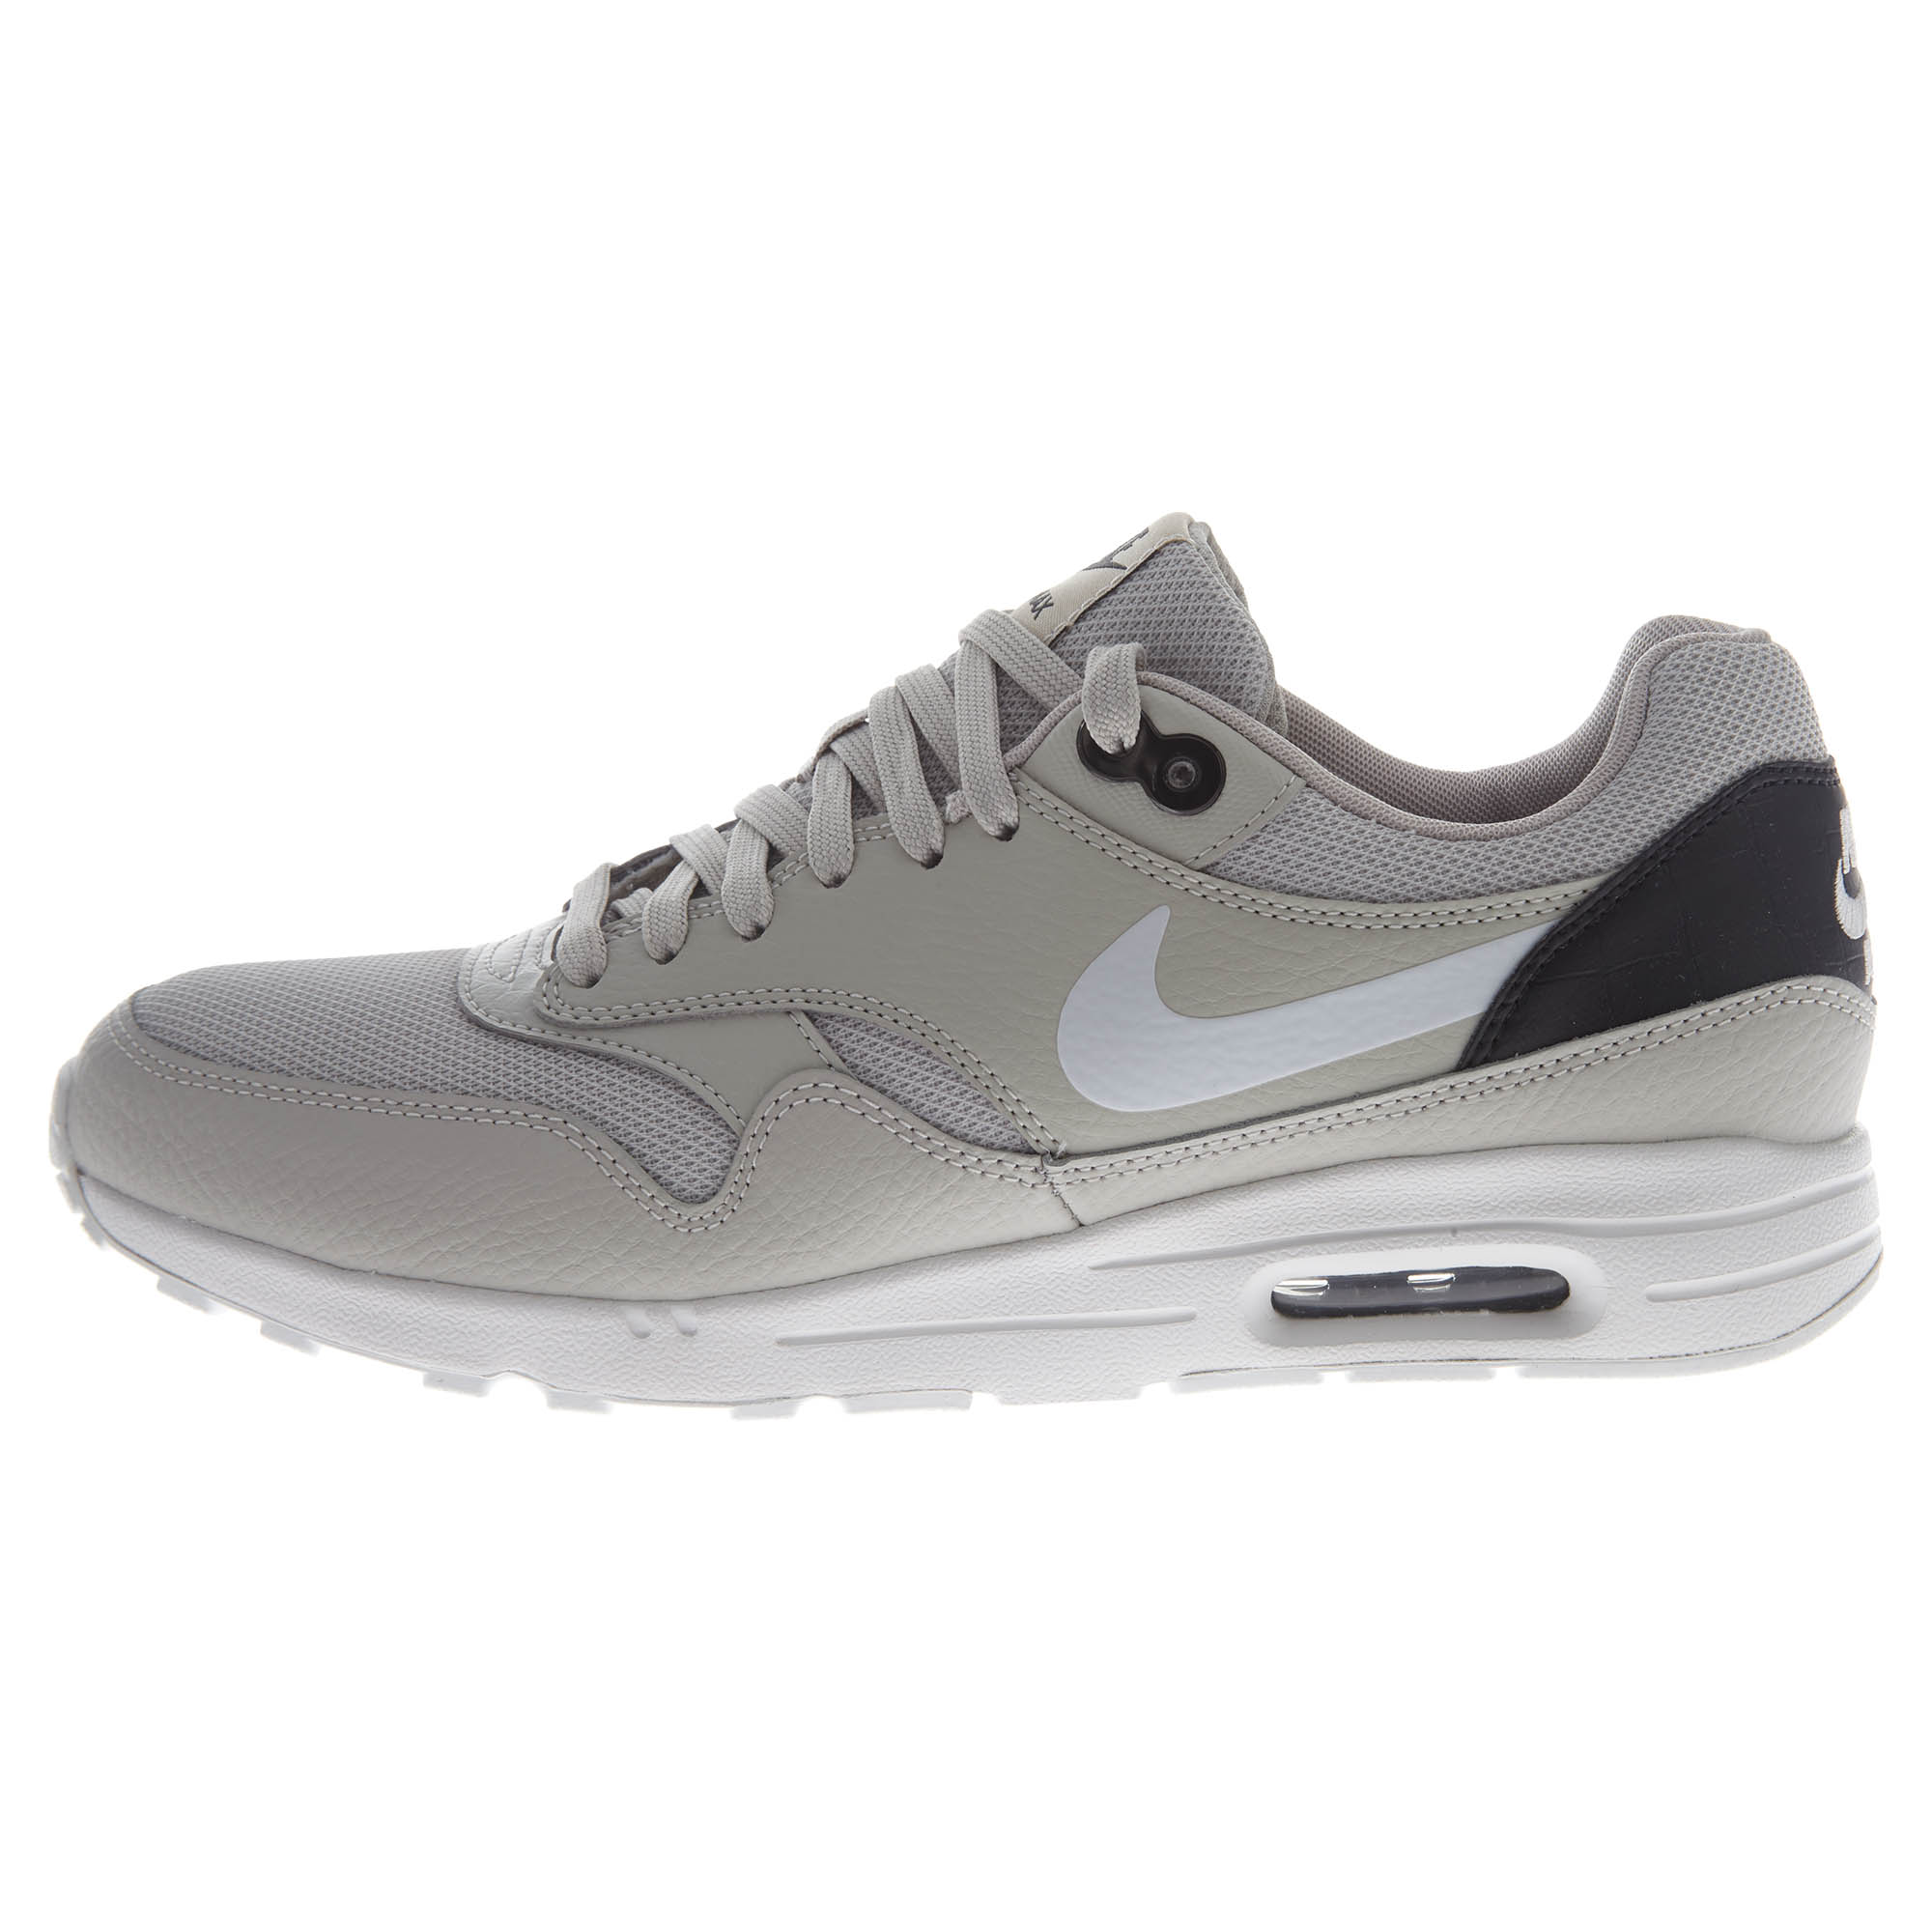 brand new a4b6b bb05a Nike Womens Air Max 1 Ultra 2.0 Sneakers